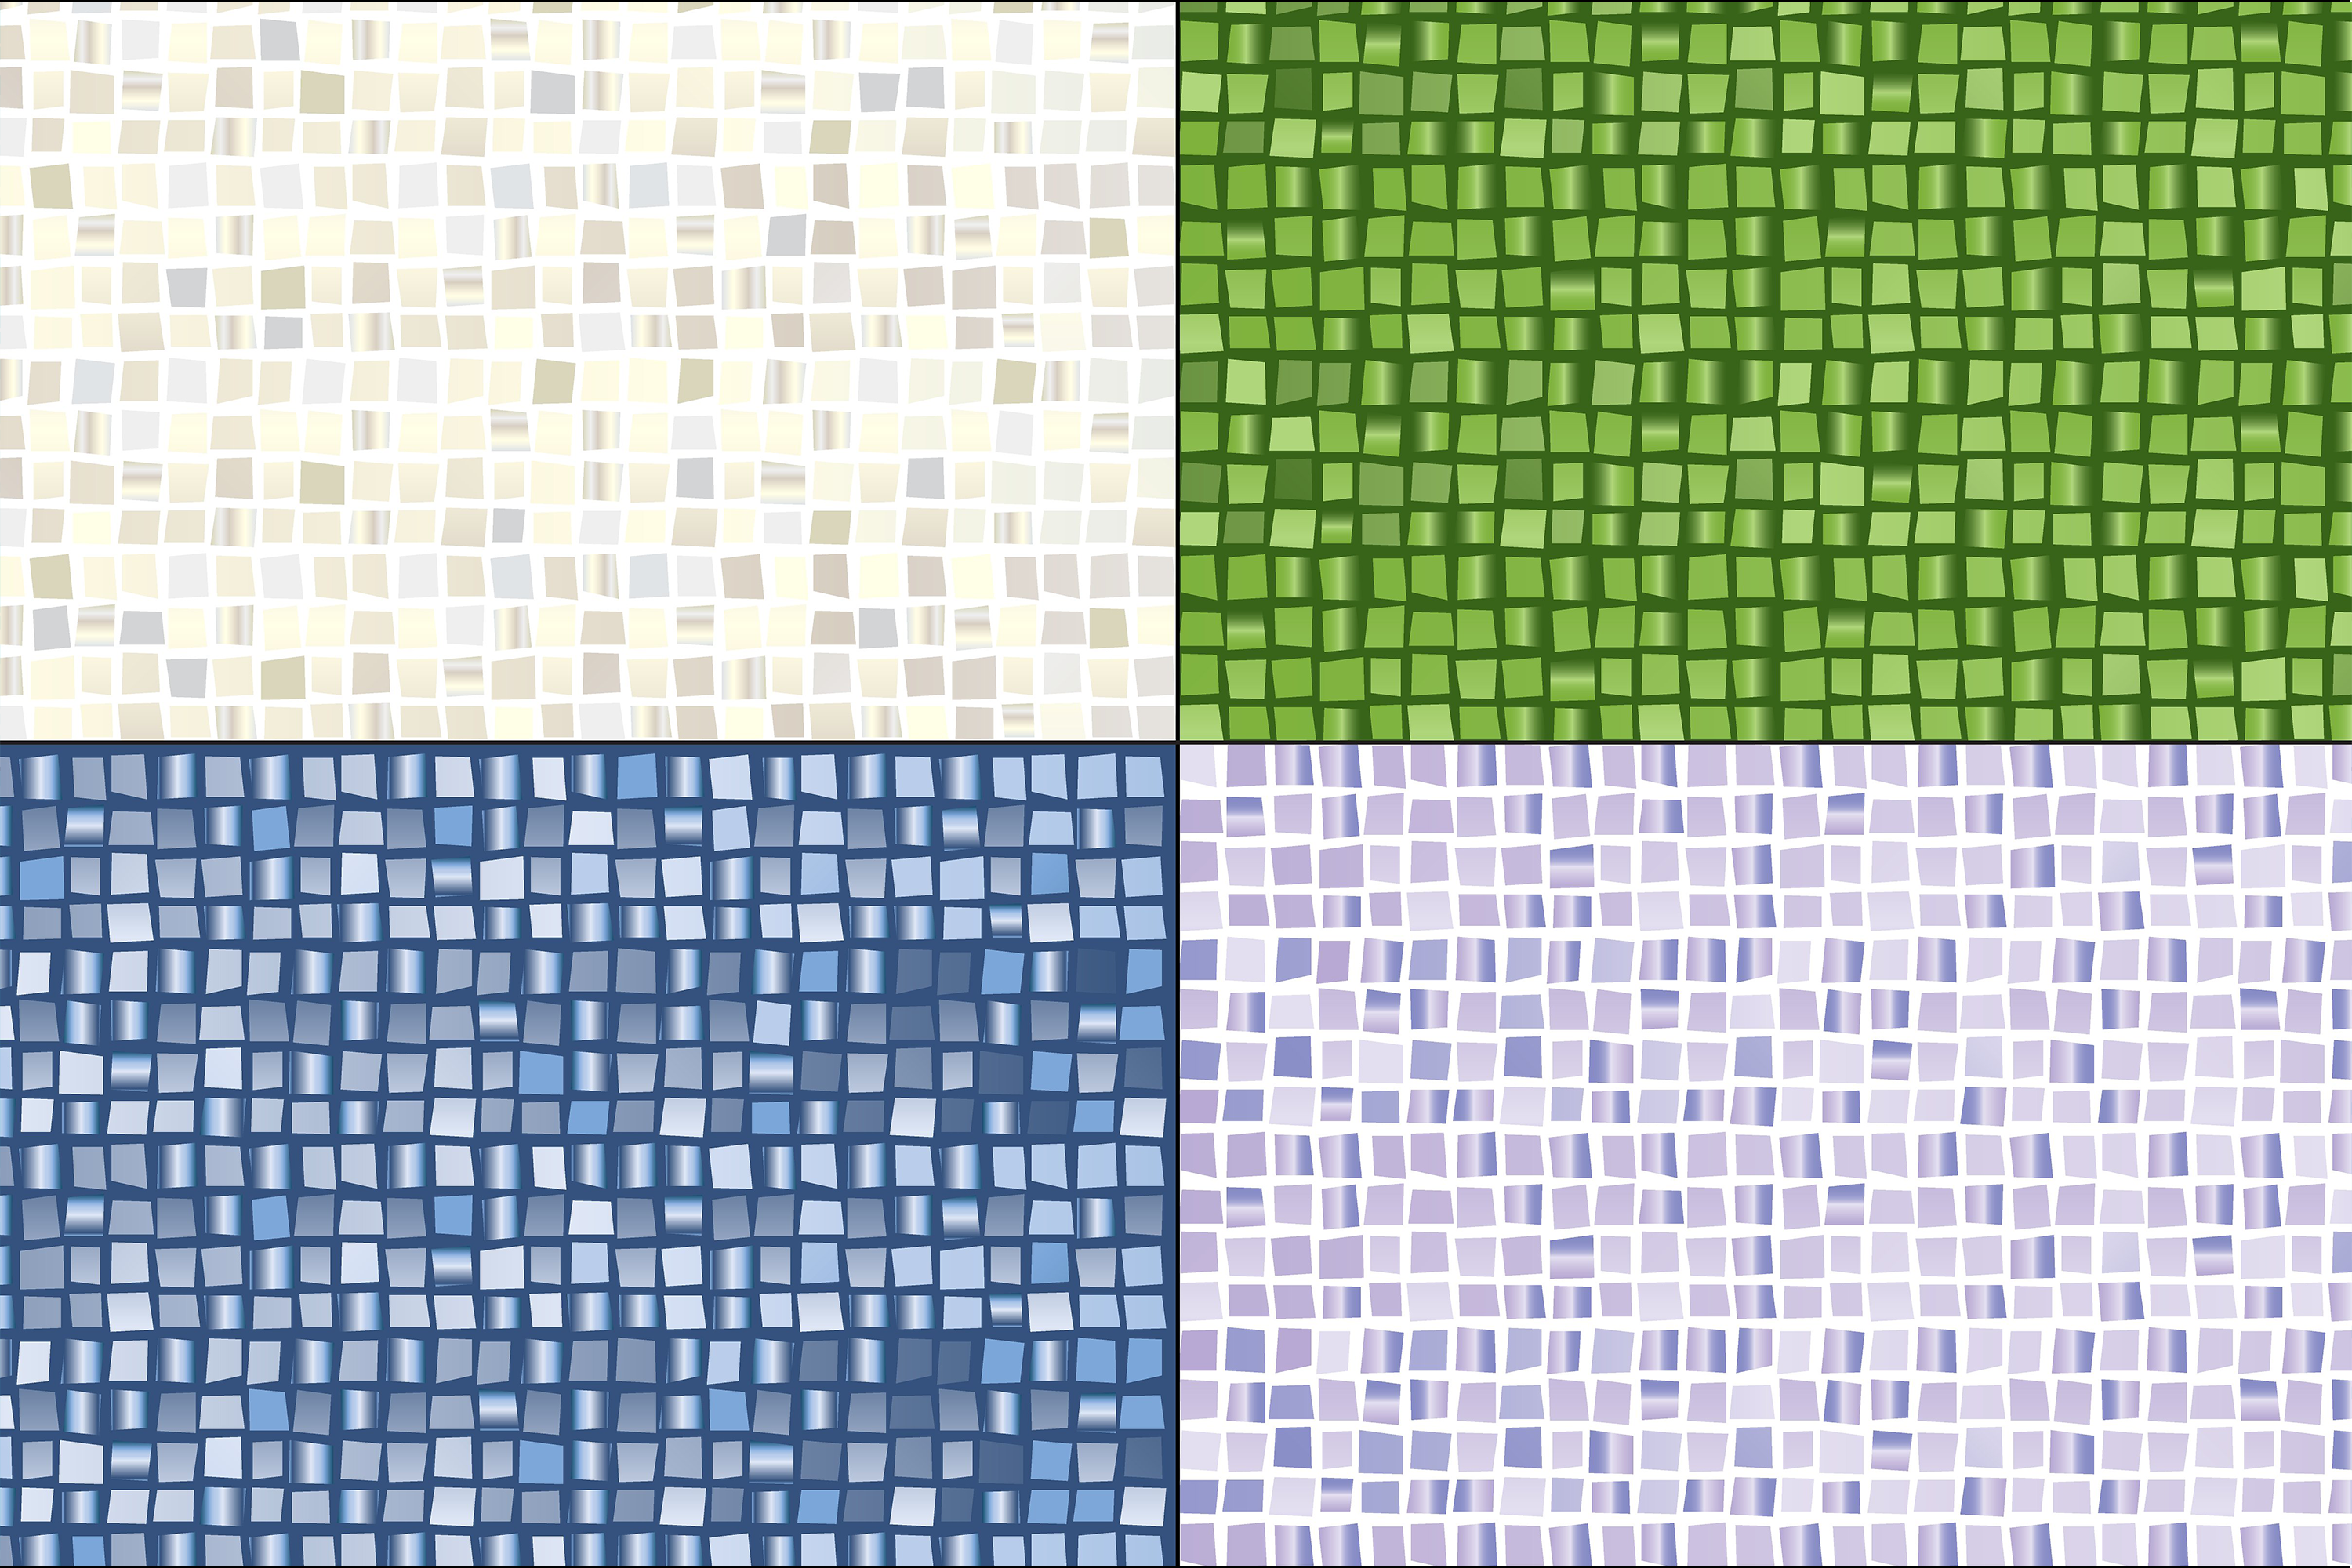 Mosaic Textures example image 2